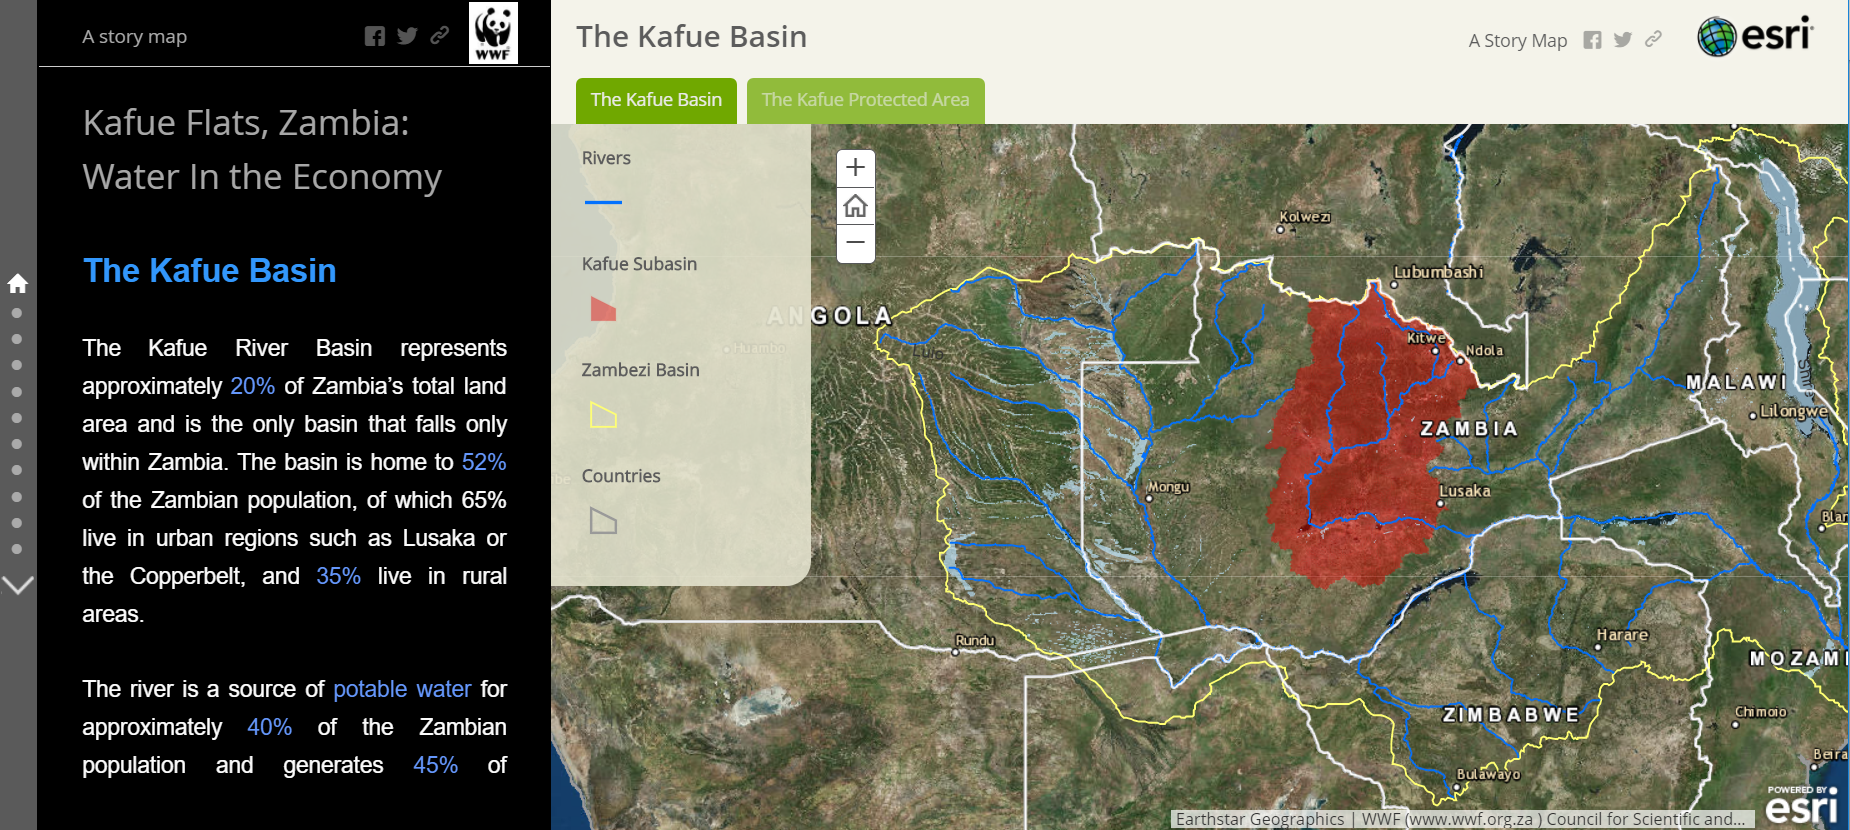 Story Map Kafue Basin Tab